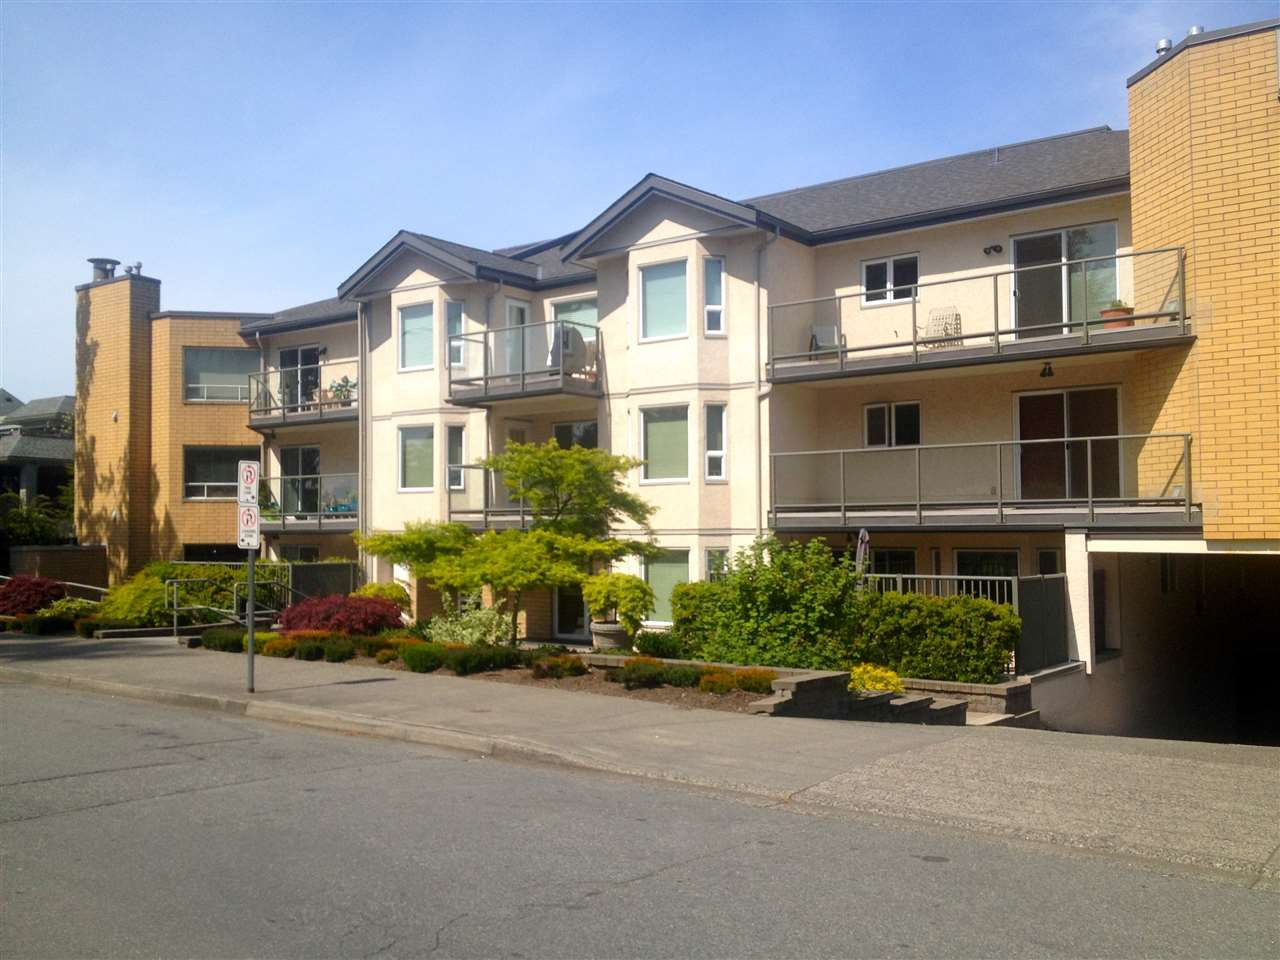 """Main Photo: 205 15255 18 Avenue in Surrey: King George Corridor Condo for sale in """"The Courtyards"""" (South Surrey White Rock)  : MLS®# R2061978"""